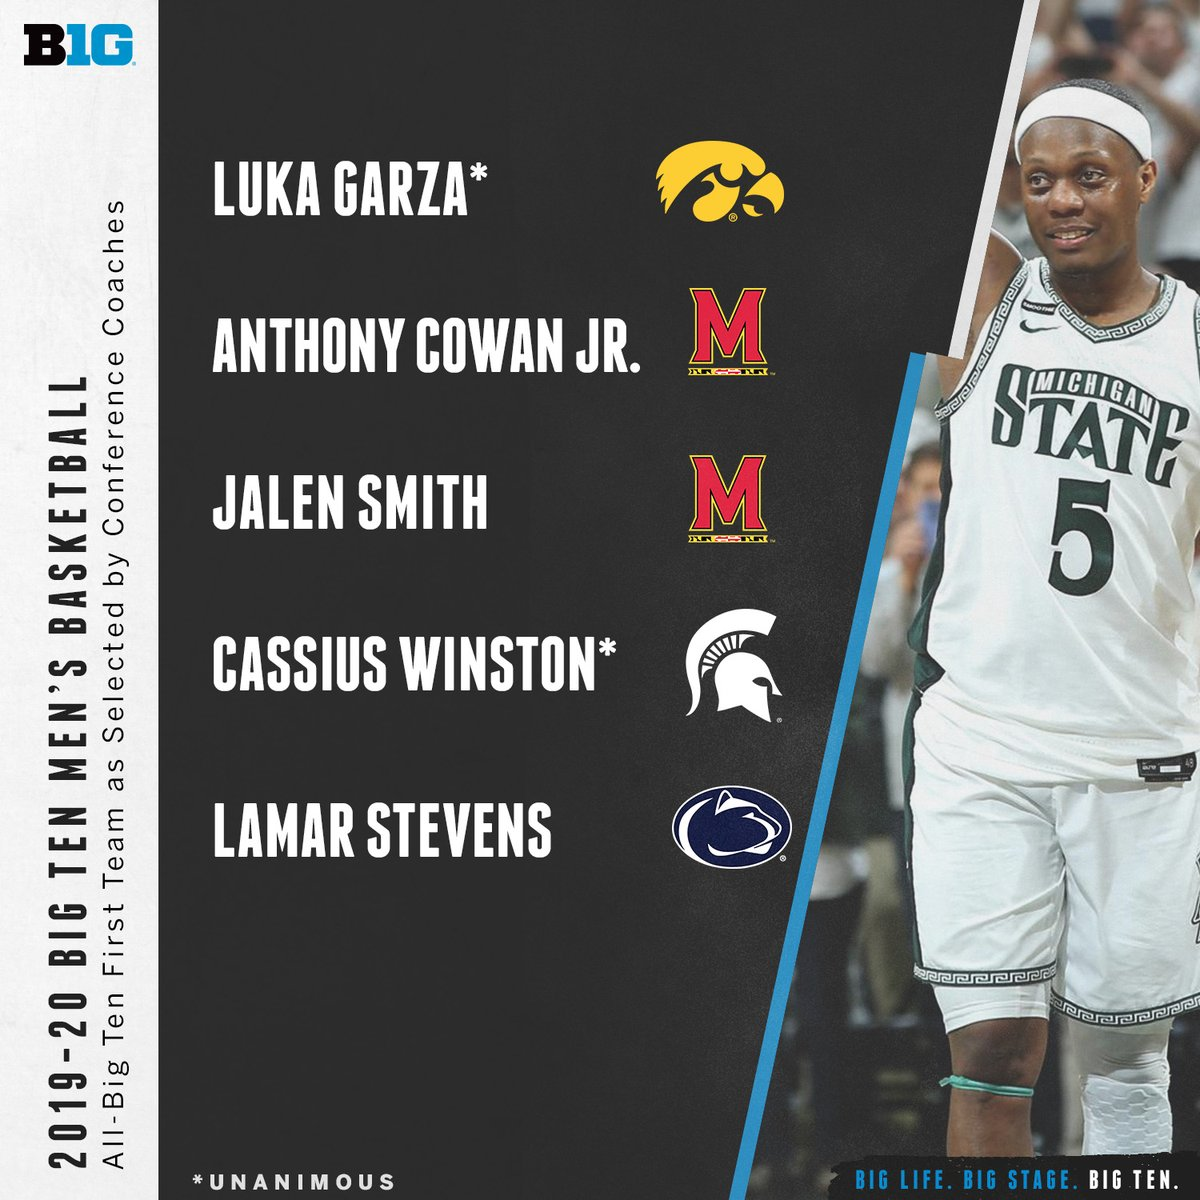 The 2019-20 Big Ten Men's Basketball All-Big Ten First Team as selected by conference coaches and media. #B1GMBBall